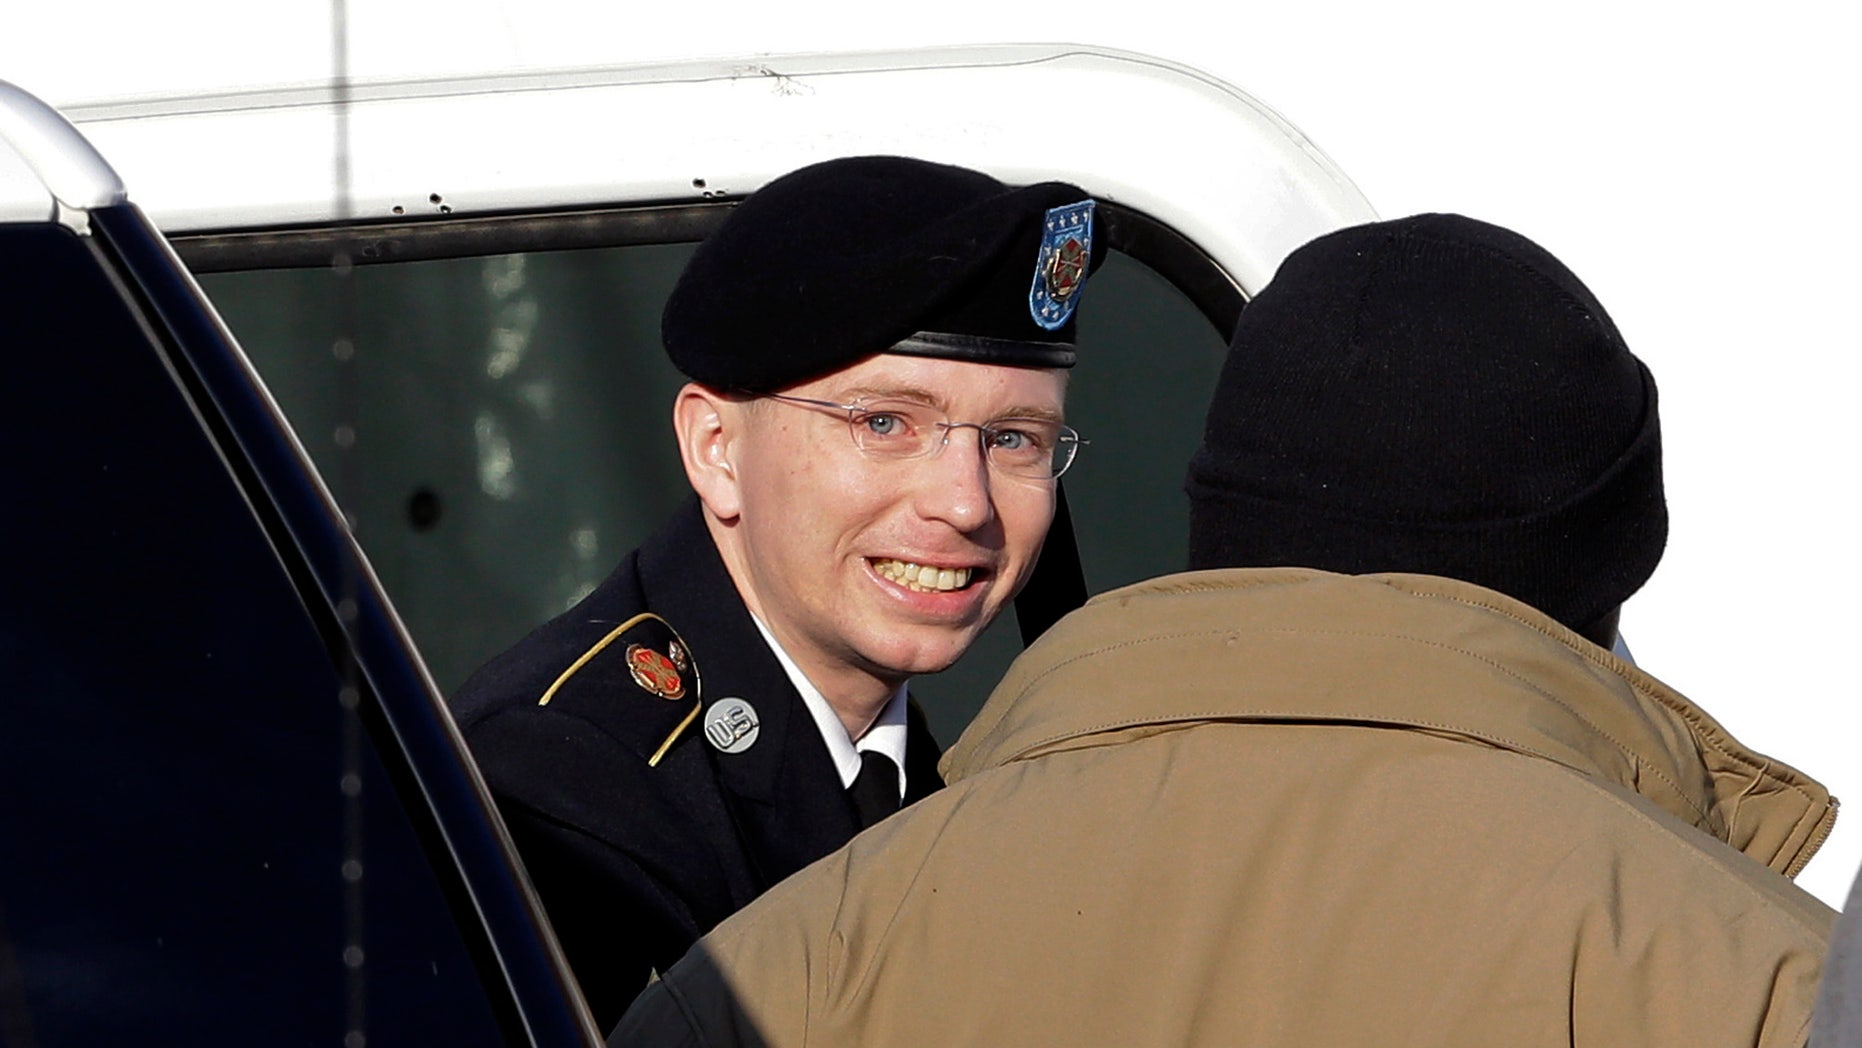 Nov. 28, 2012: Army Pfc. Bradley Manning, center, steps out of a security vehicle as he is escorted into a courthouse in Fort Meade, Md.,  for a pretrial hearing.